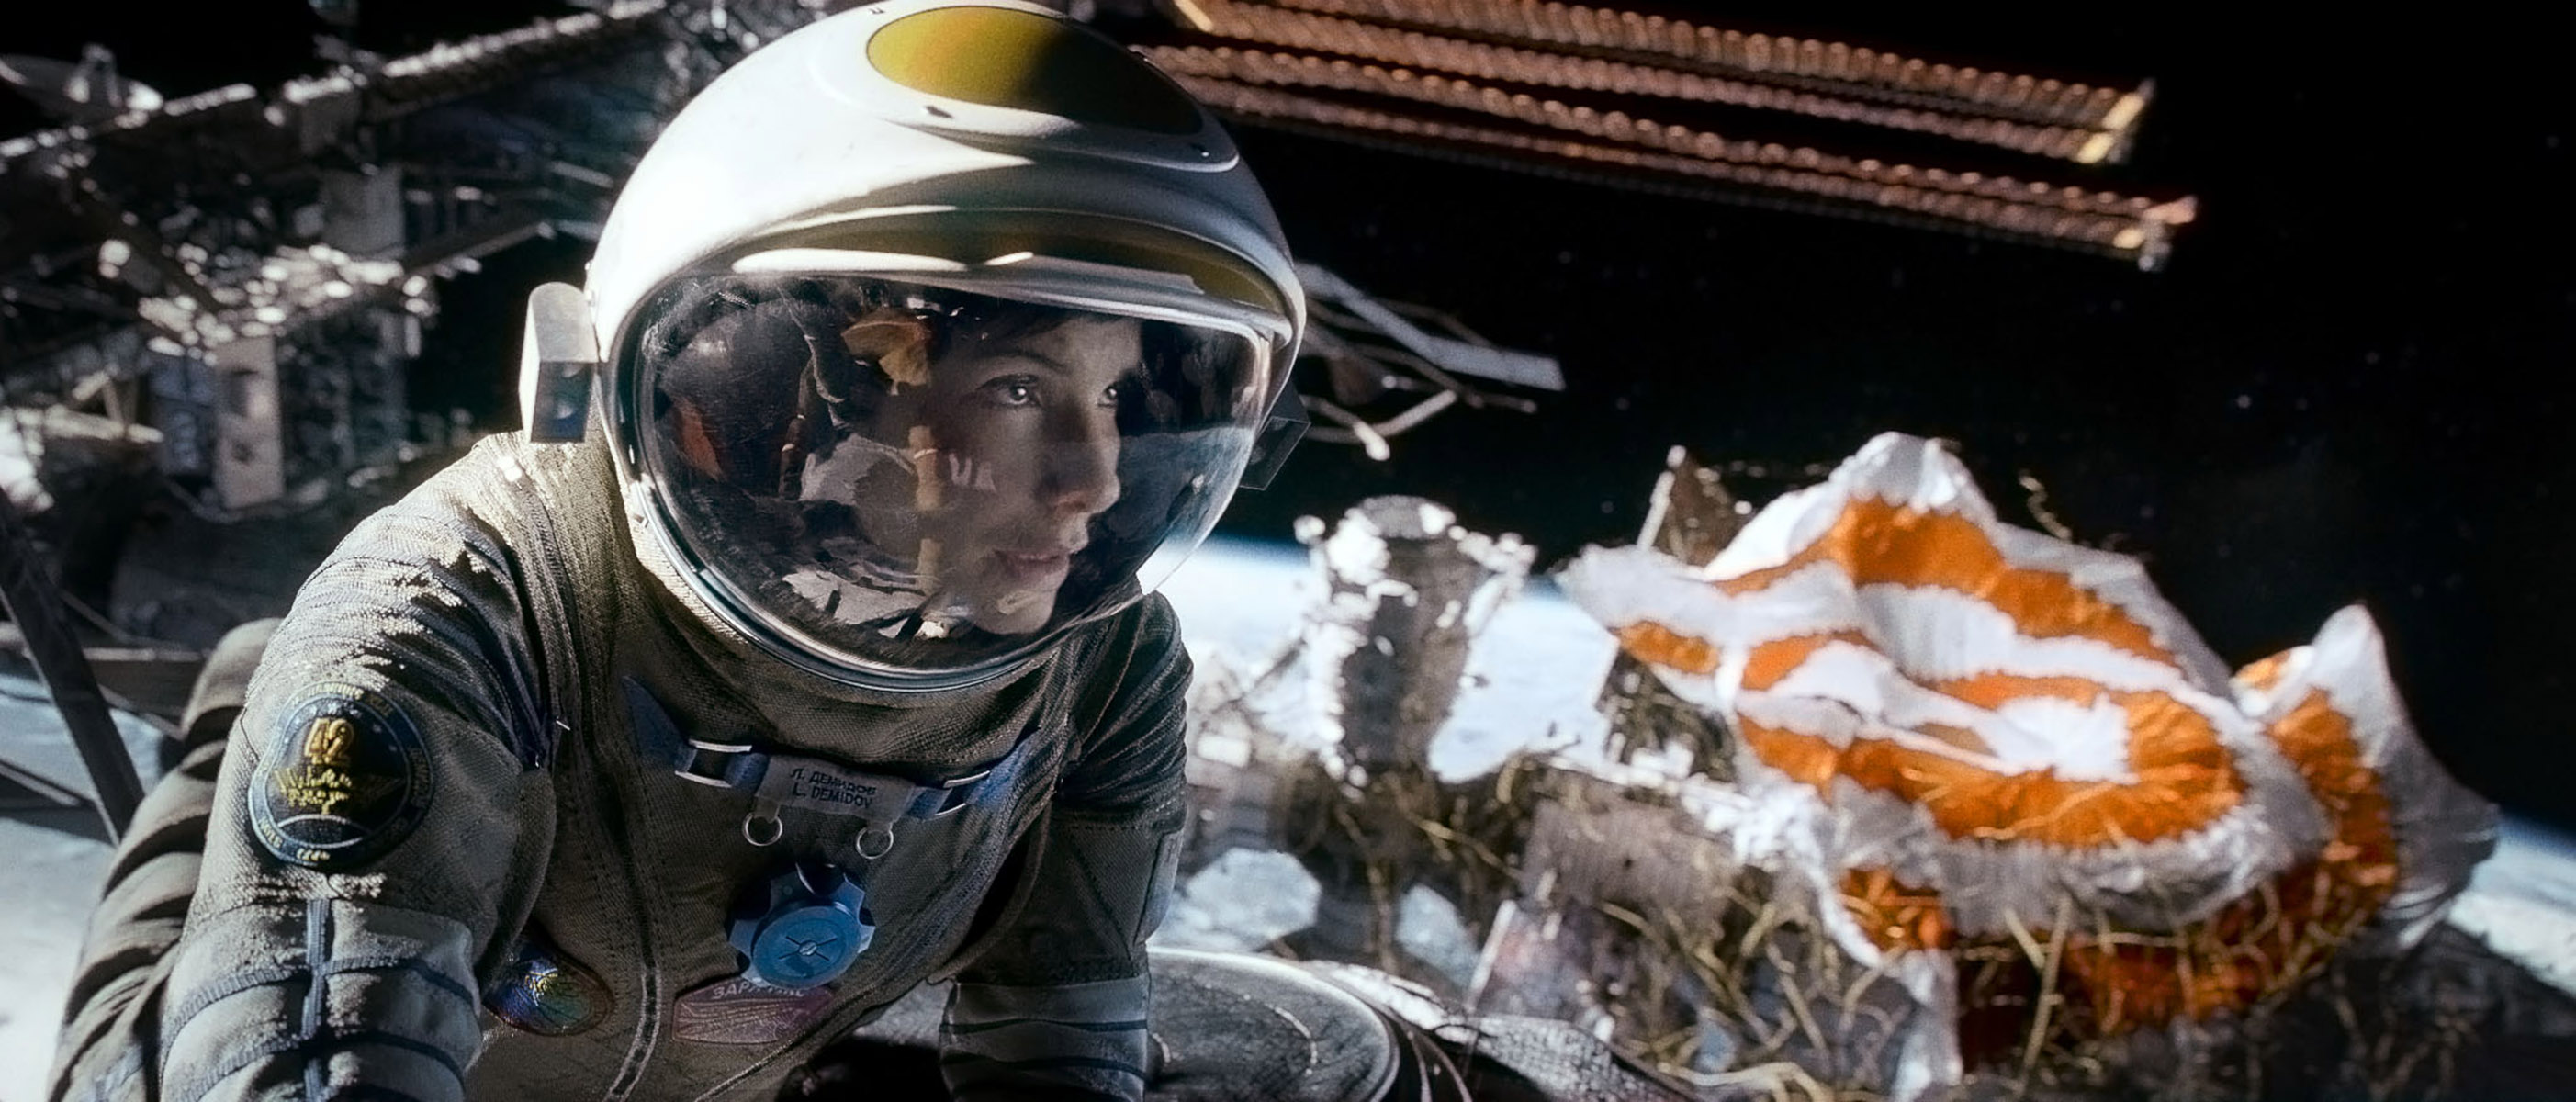 NASA Congratulates 'Gravity' on Academy Award Wins | NASA